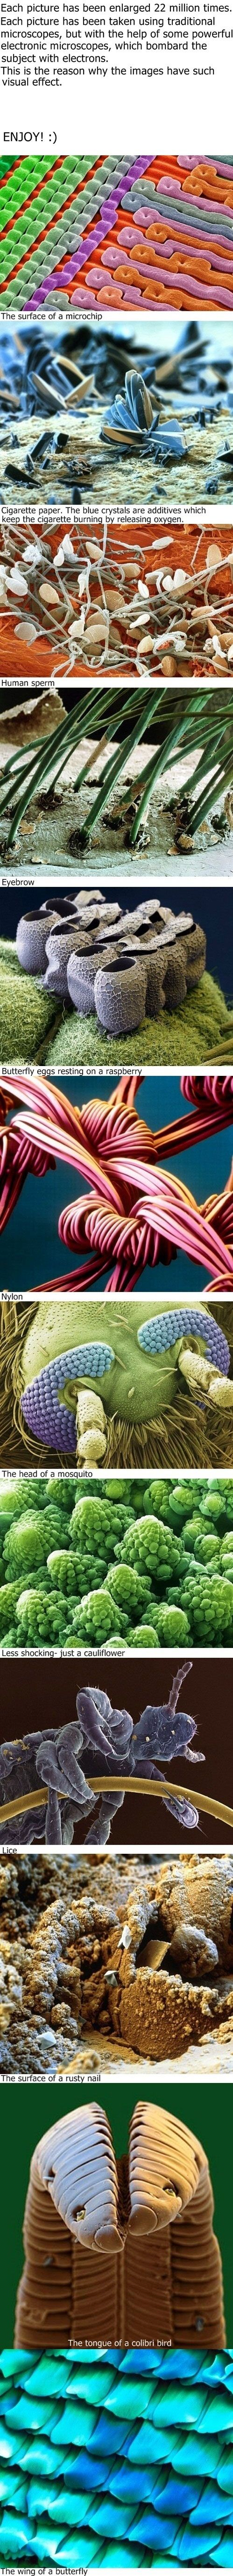 beautiful-microscopic-images-atoms